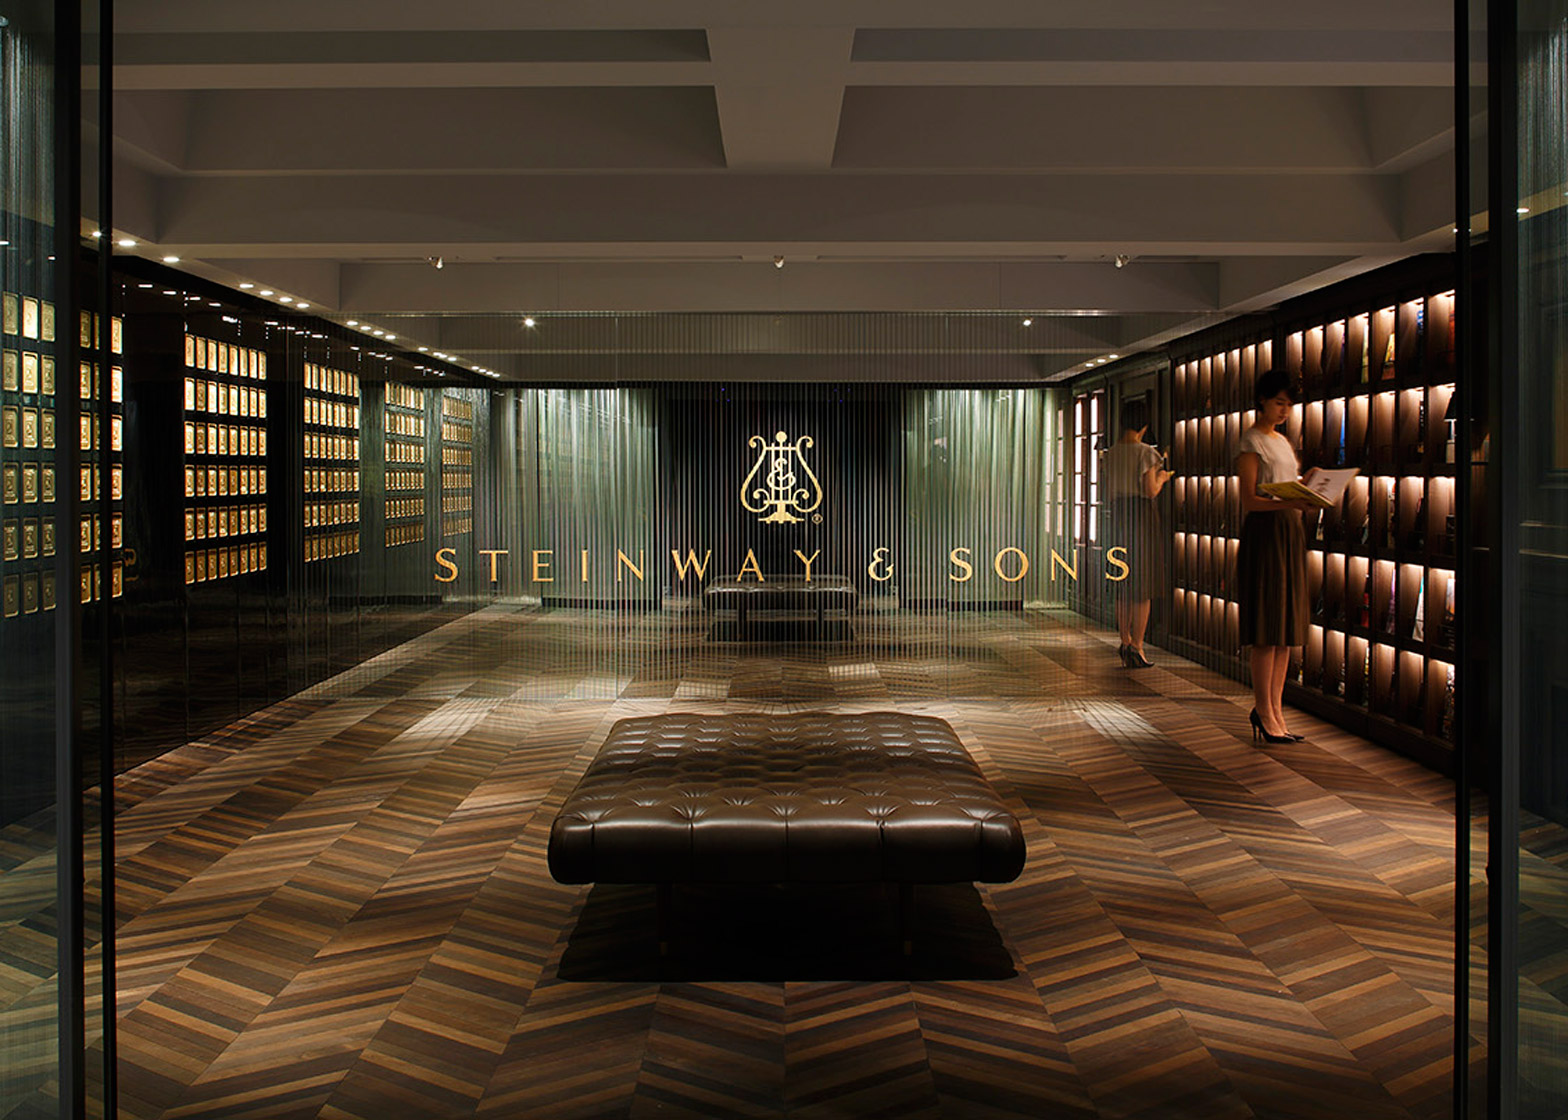 Steinway and Sons Flagship shop by Salt